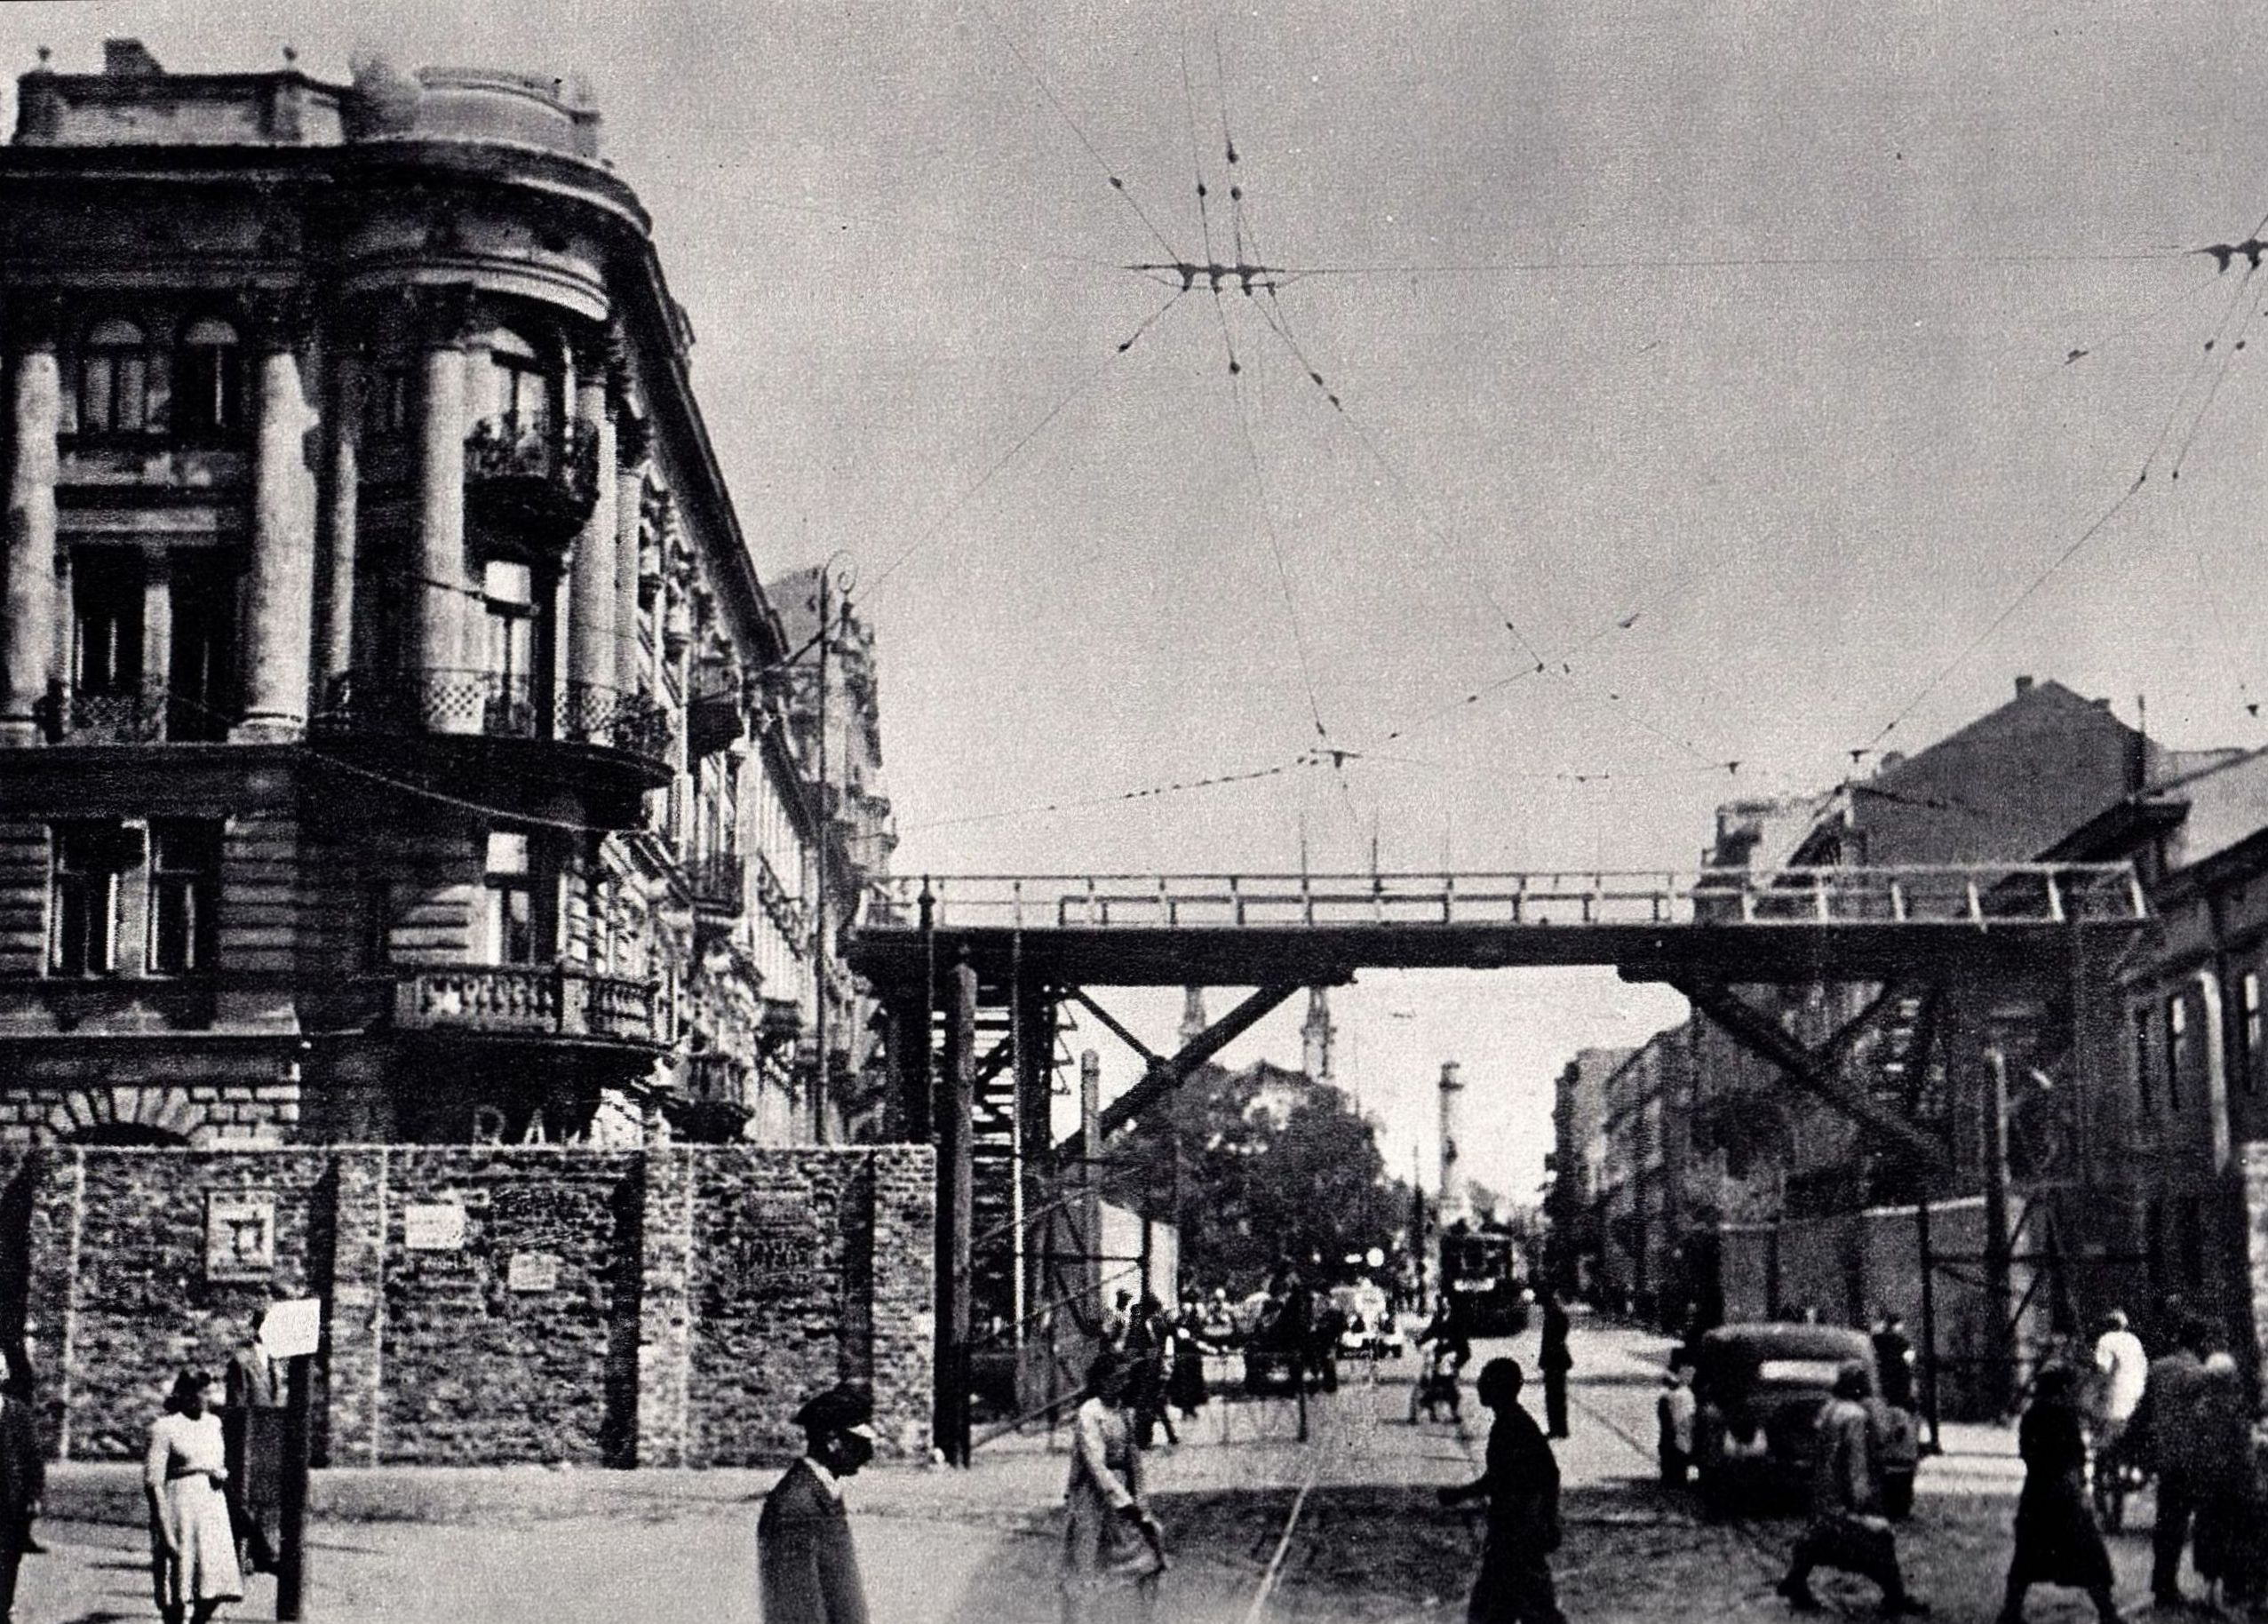 Plik:Warsaw Ghetto Footbridge 06.jpg